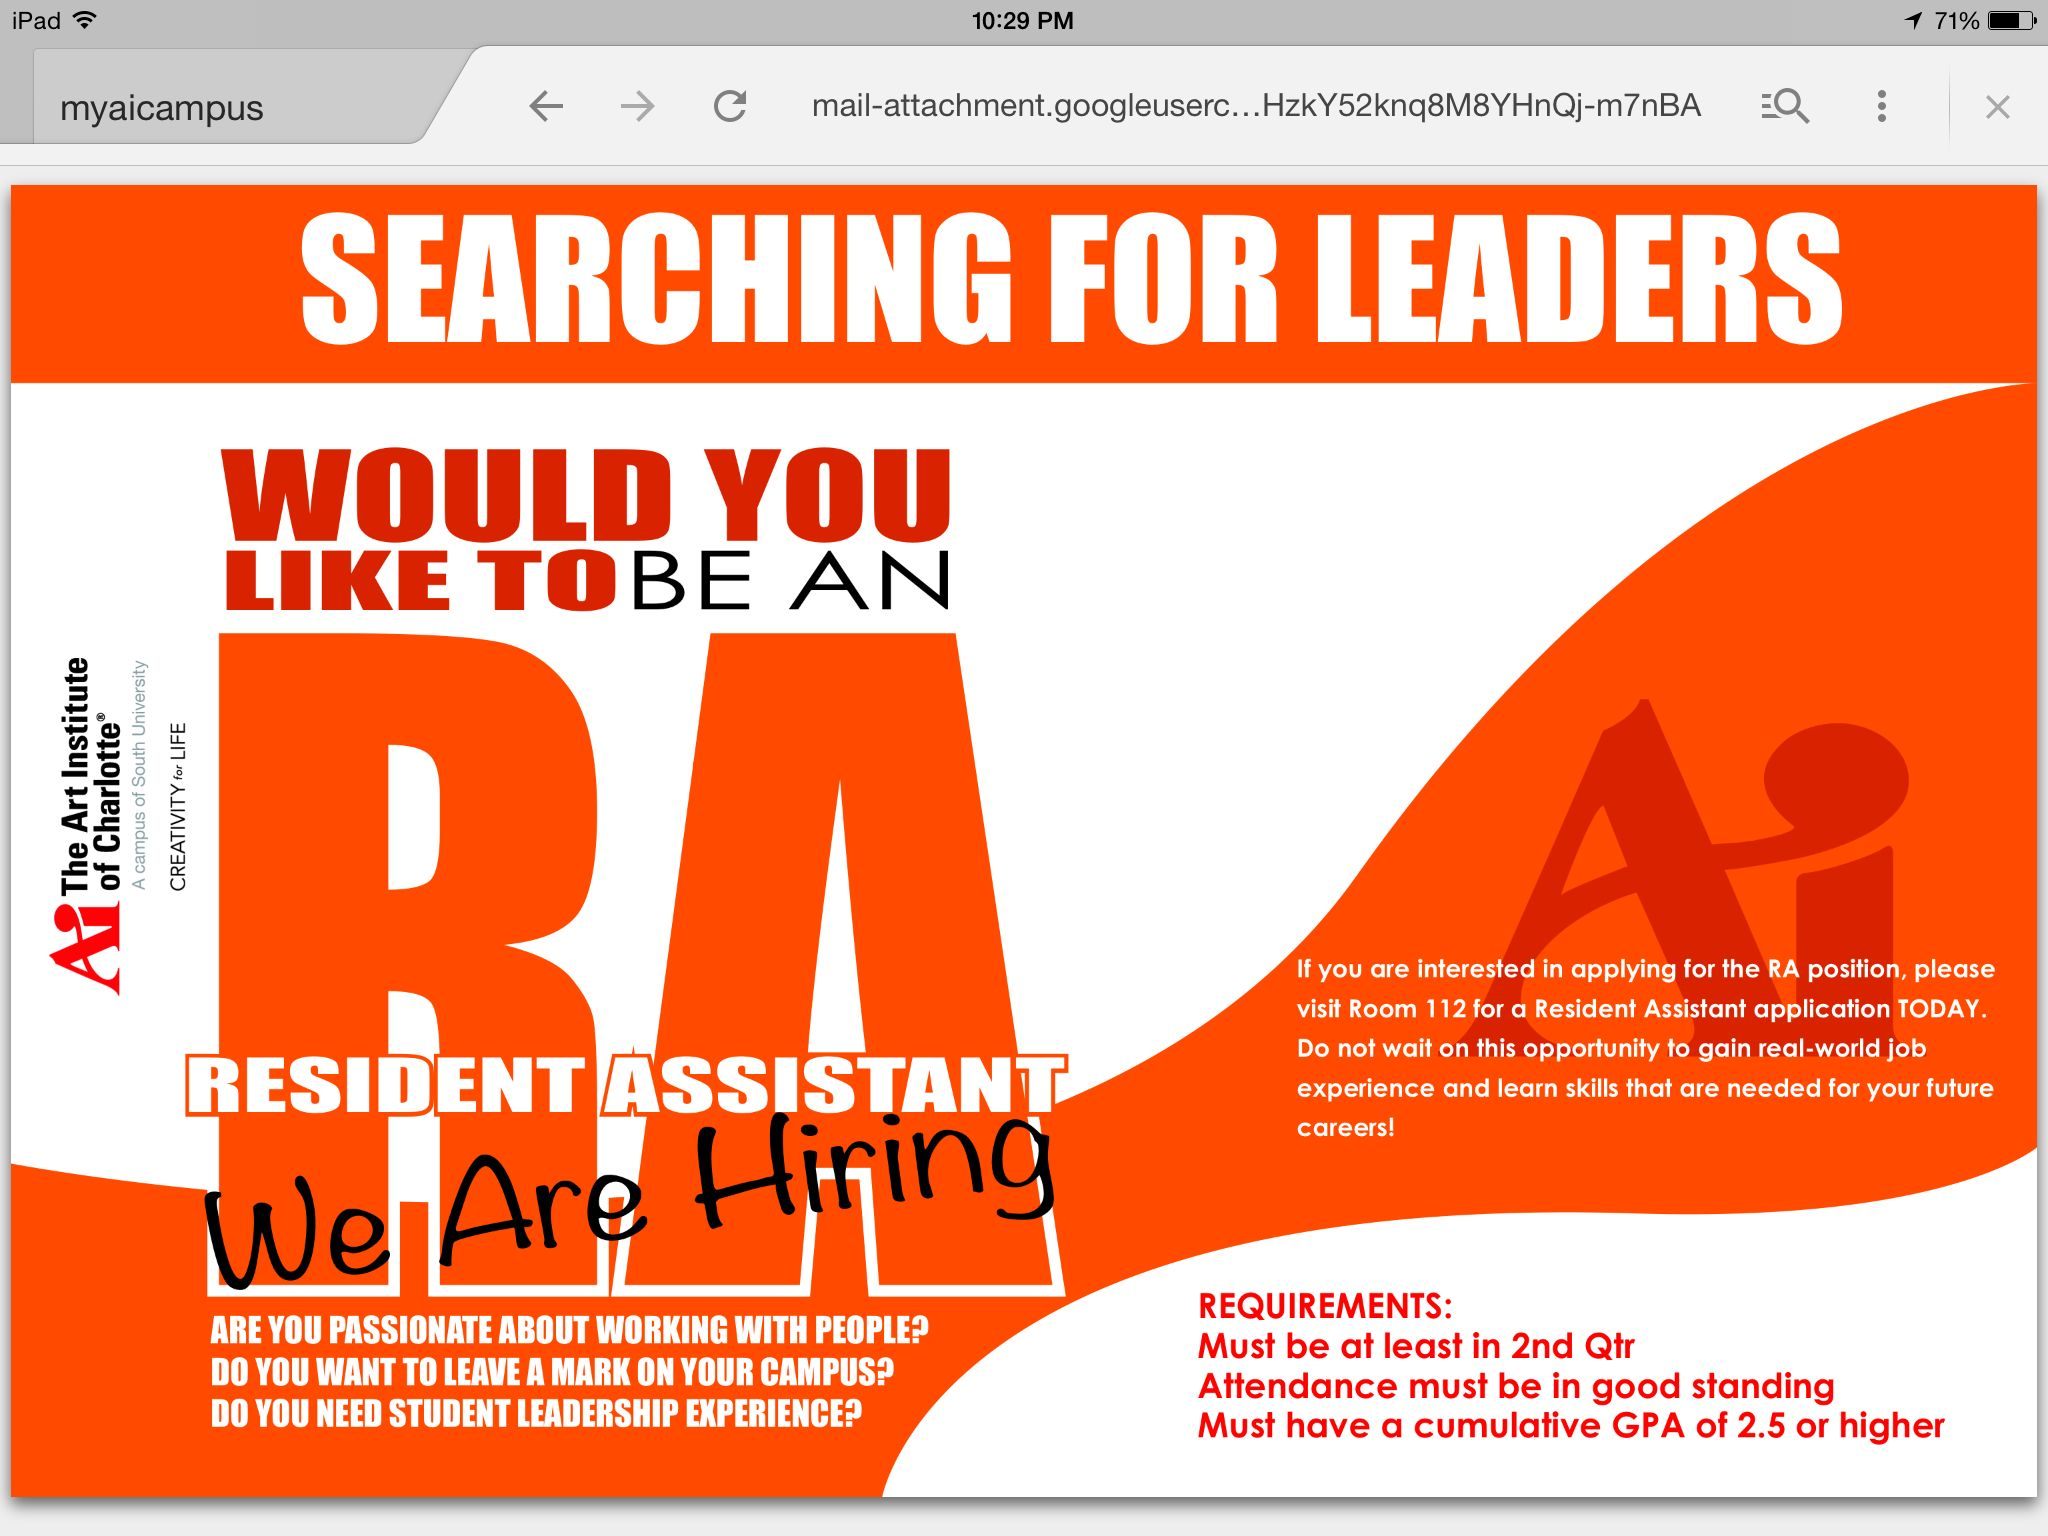 Resident Assistant Search Flyer  Campus Work At The Art Institute